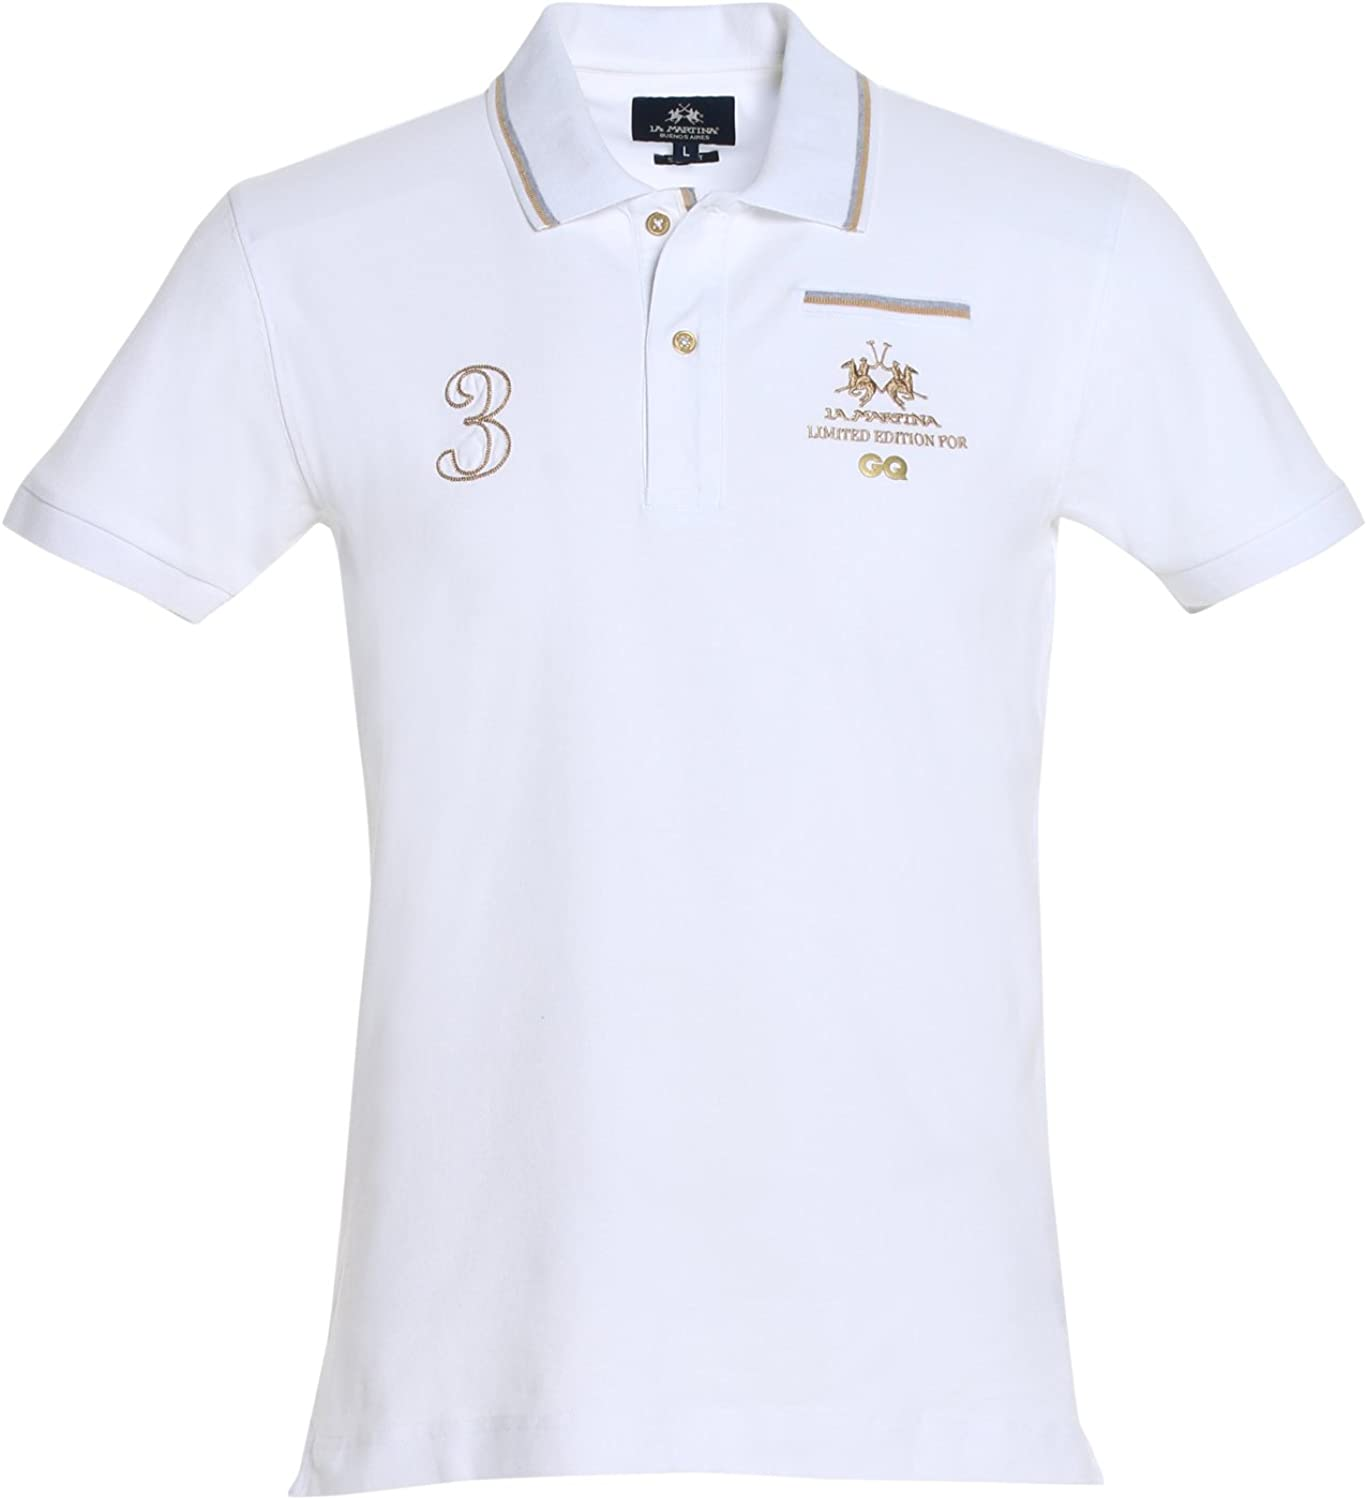 La Martina Polo GQ Camisa, Blanco (00001 Optic White), L para Hombre: Amazon.es: Ropa y accesorios